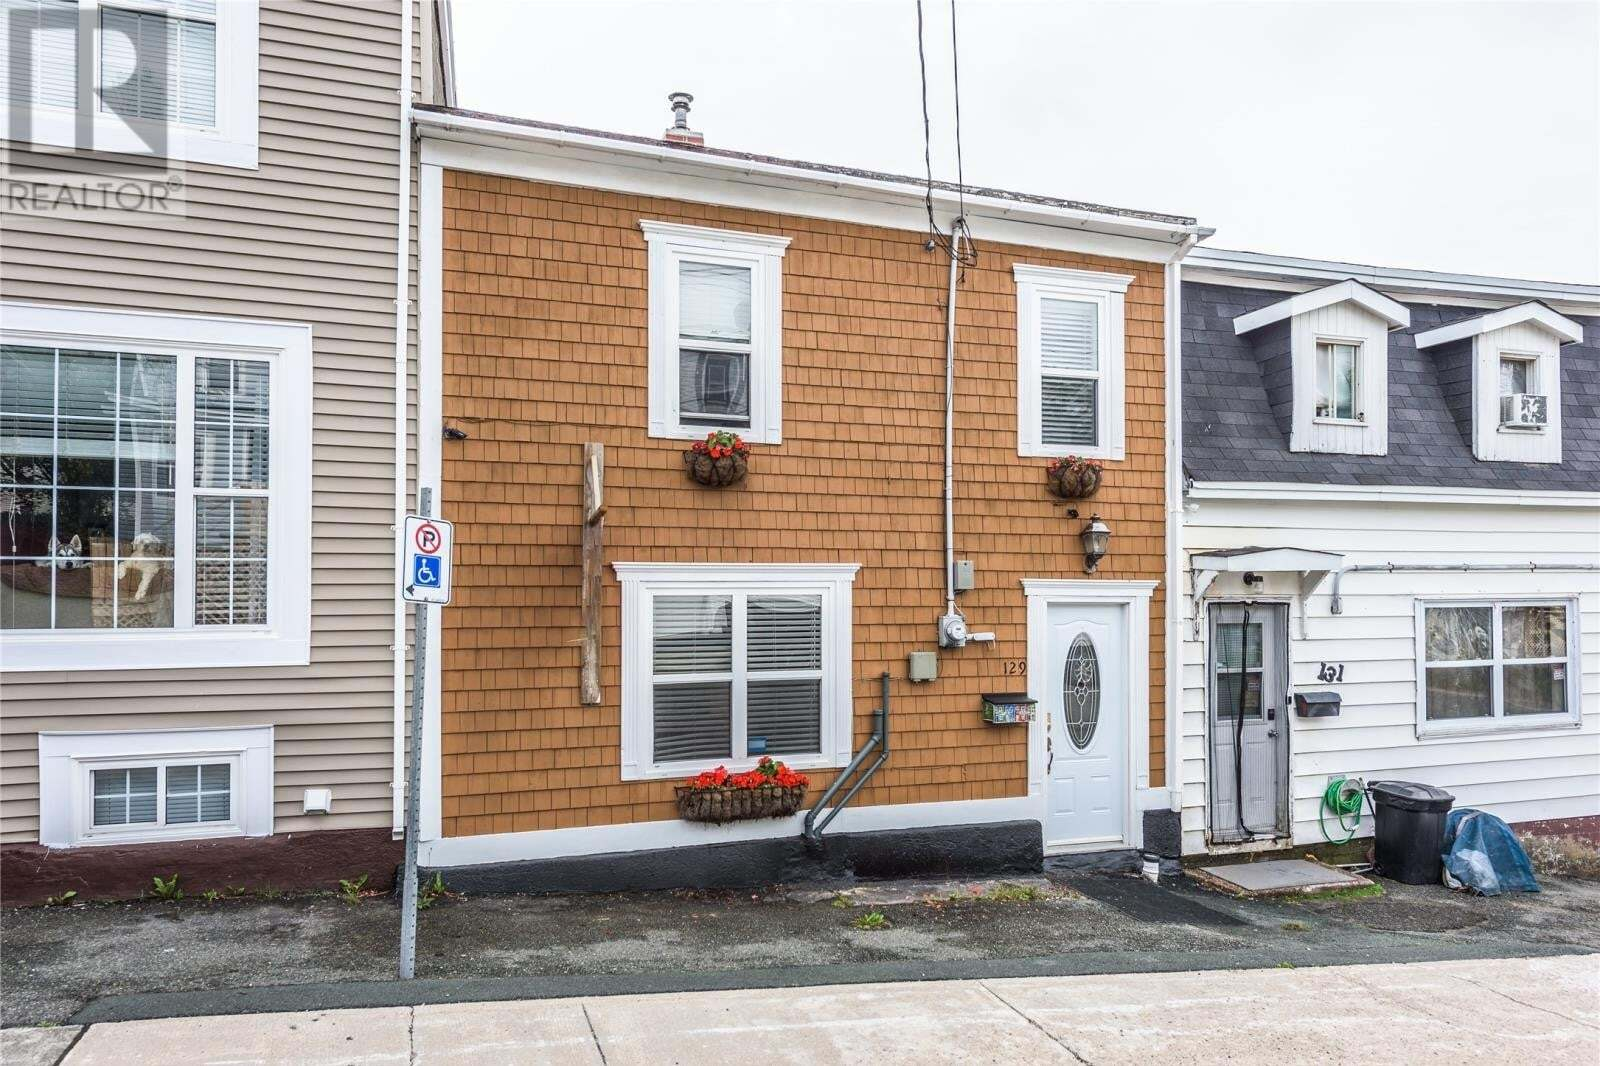 House for sale at 129 Cabot St St. John's Newfoundland - MLS: 1218332